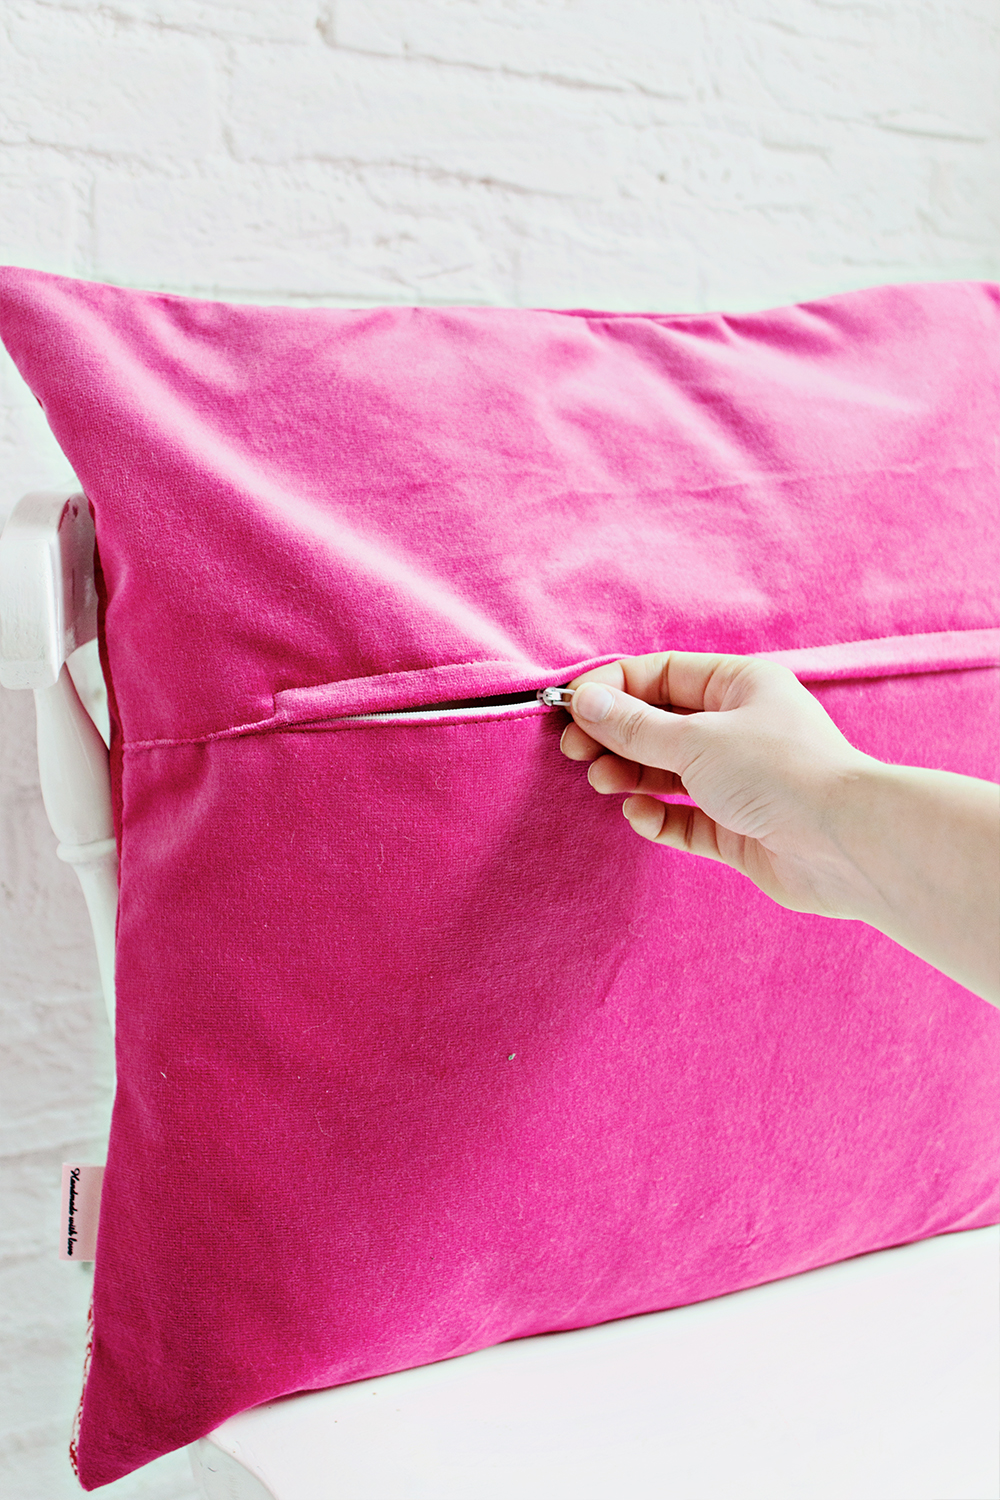 HANDMADE CUSHION COVER - Pink, Red & White